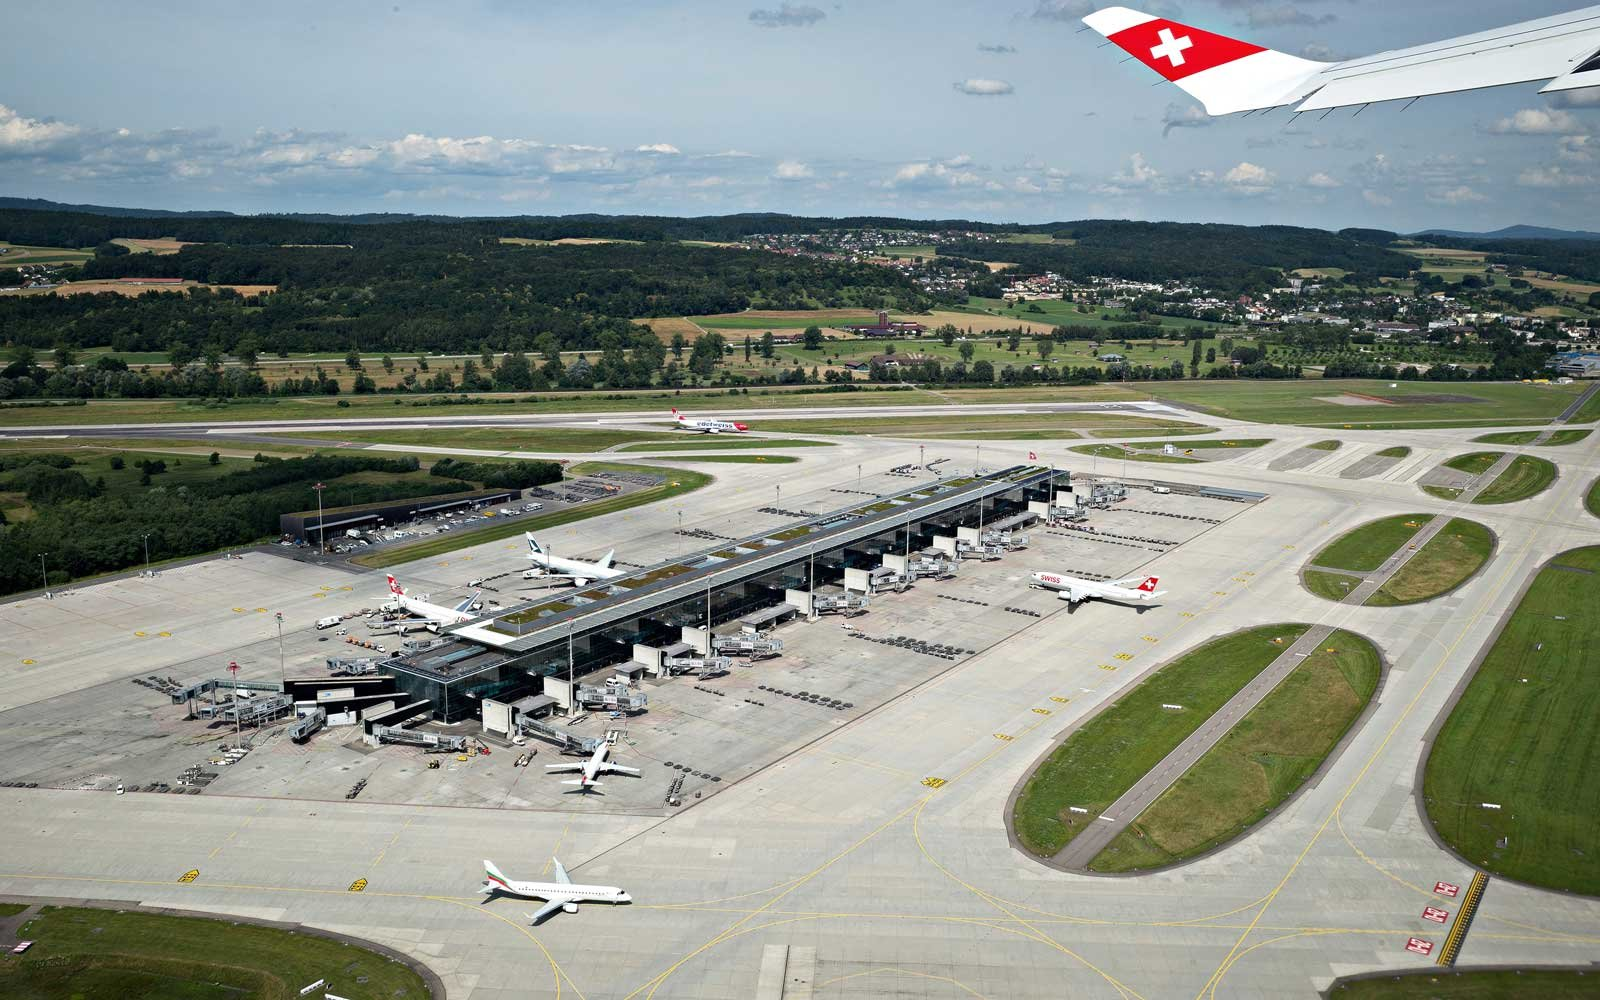 Overview of part of the Zurich Airport, in Switzerland